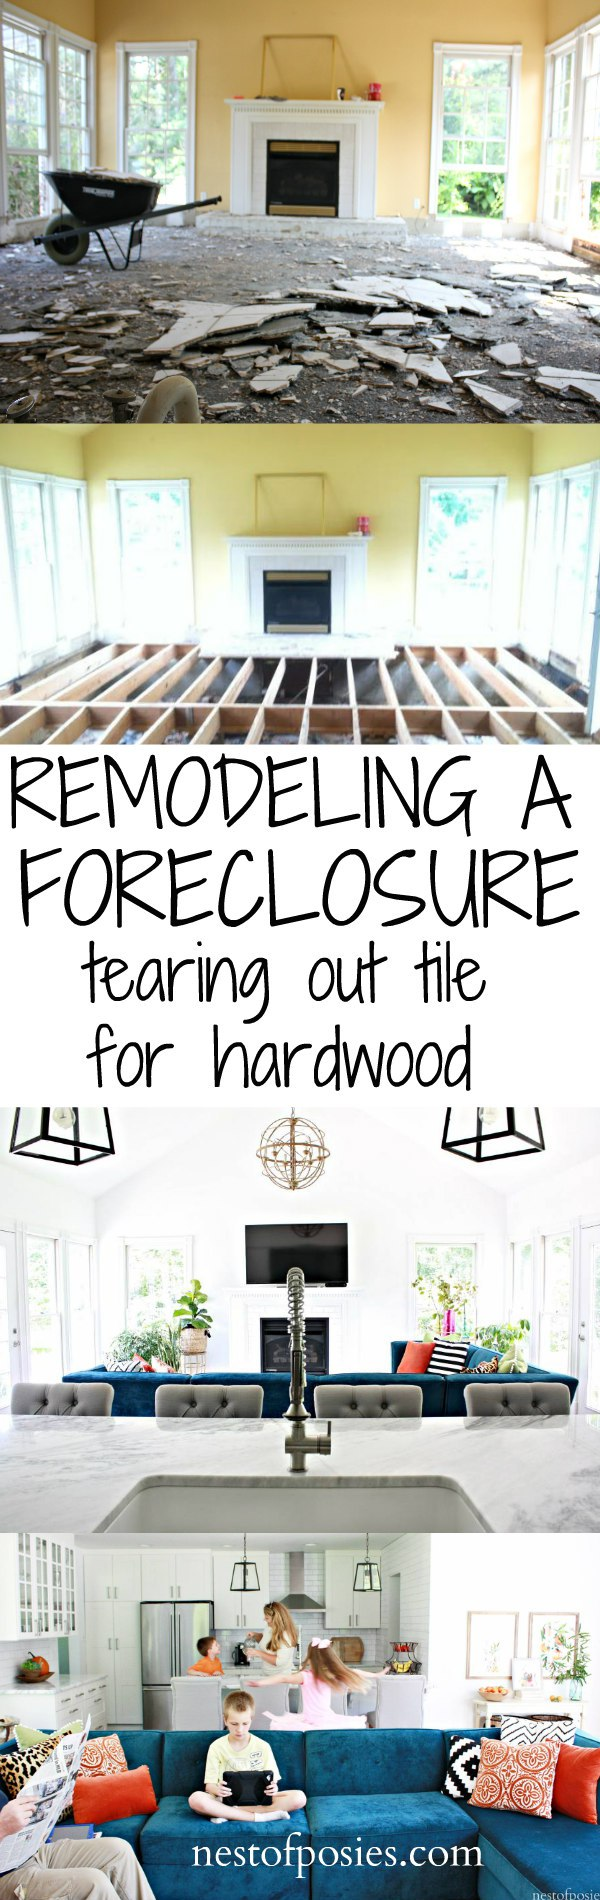 Remolding-a-foreclosure.-Tearing-out-tile-for-hardwood-theres-a-video-to-watch-as-welll